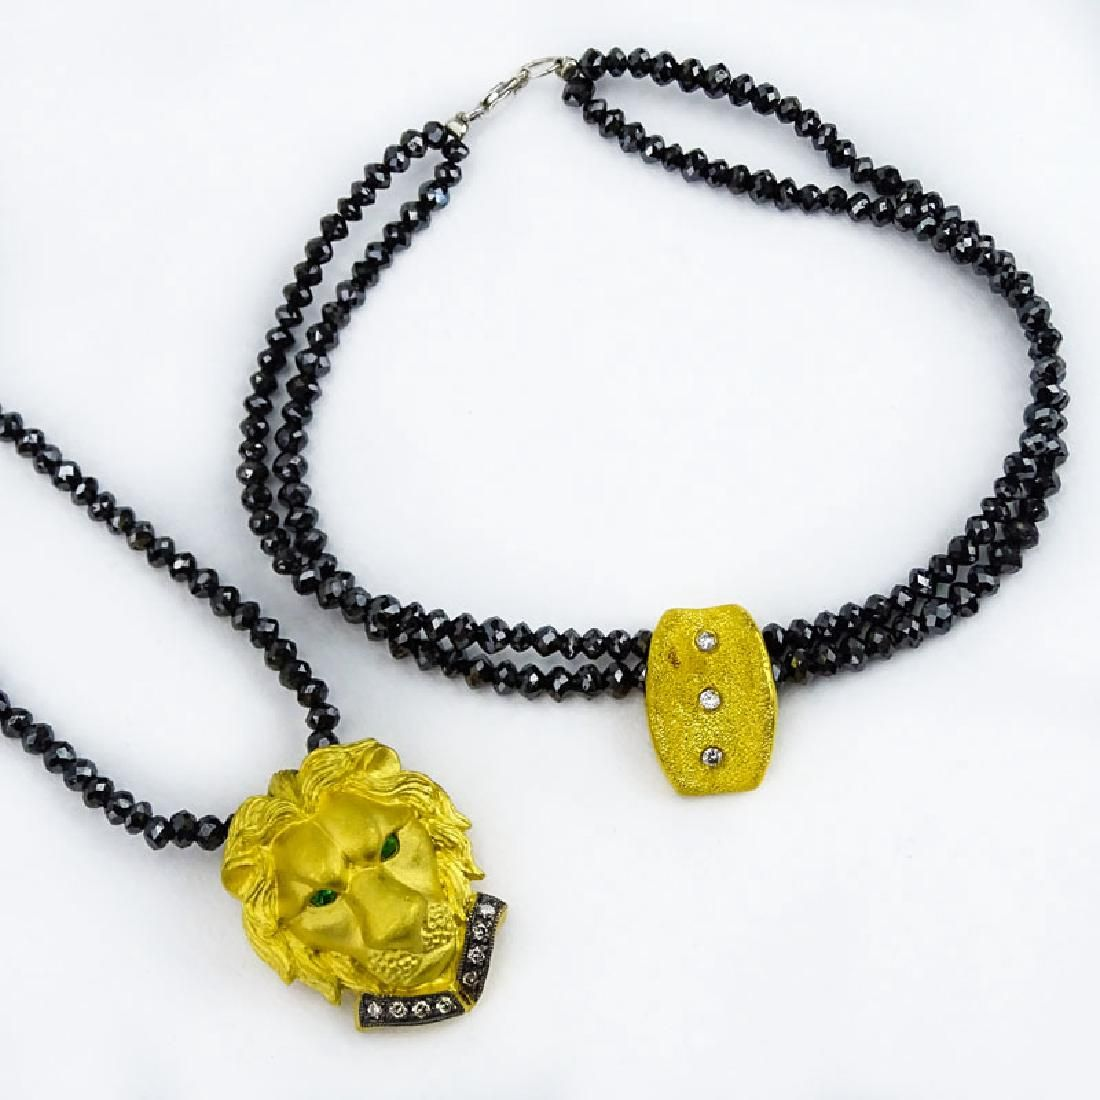 Vintage Black Diamond Bead Necklace(s) and Double